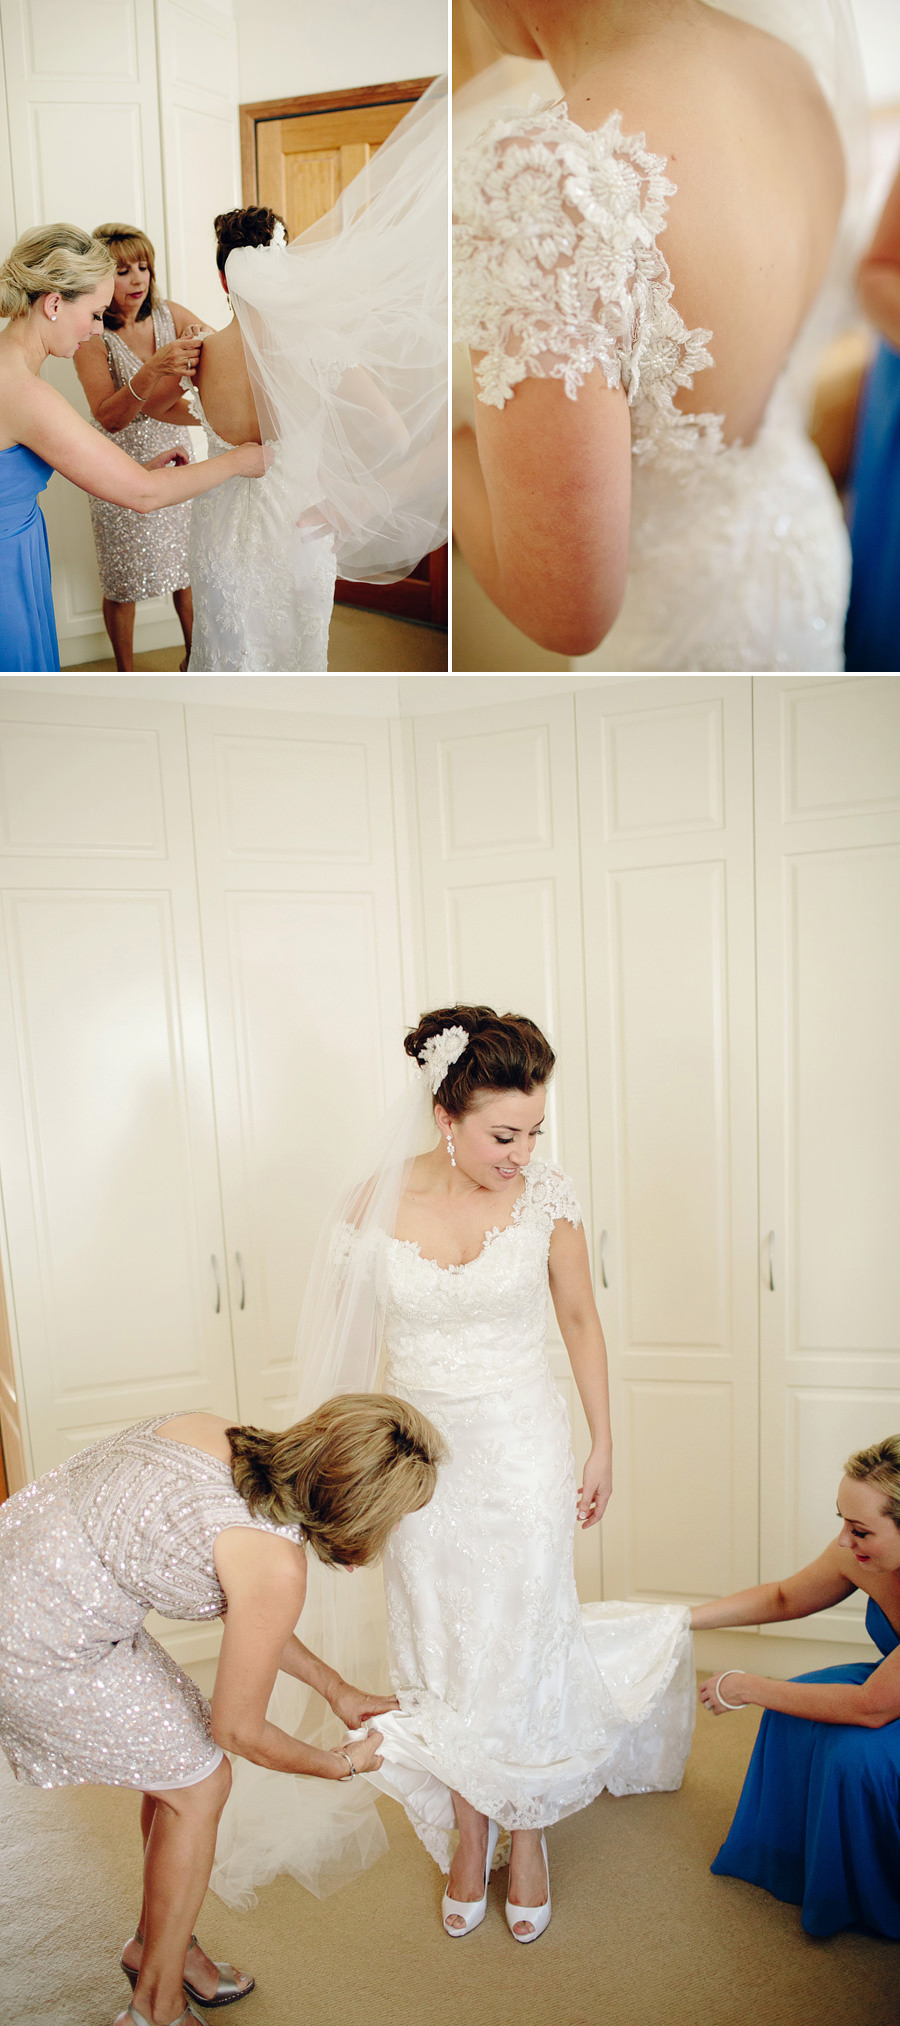 Contemporary Wedding Photographer: Girls Getting Ready